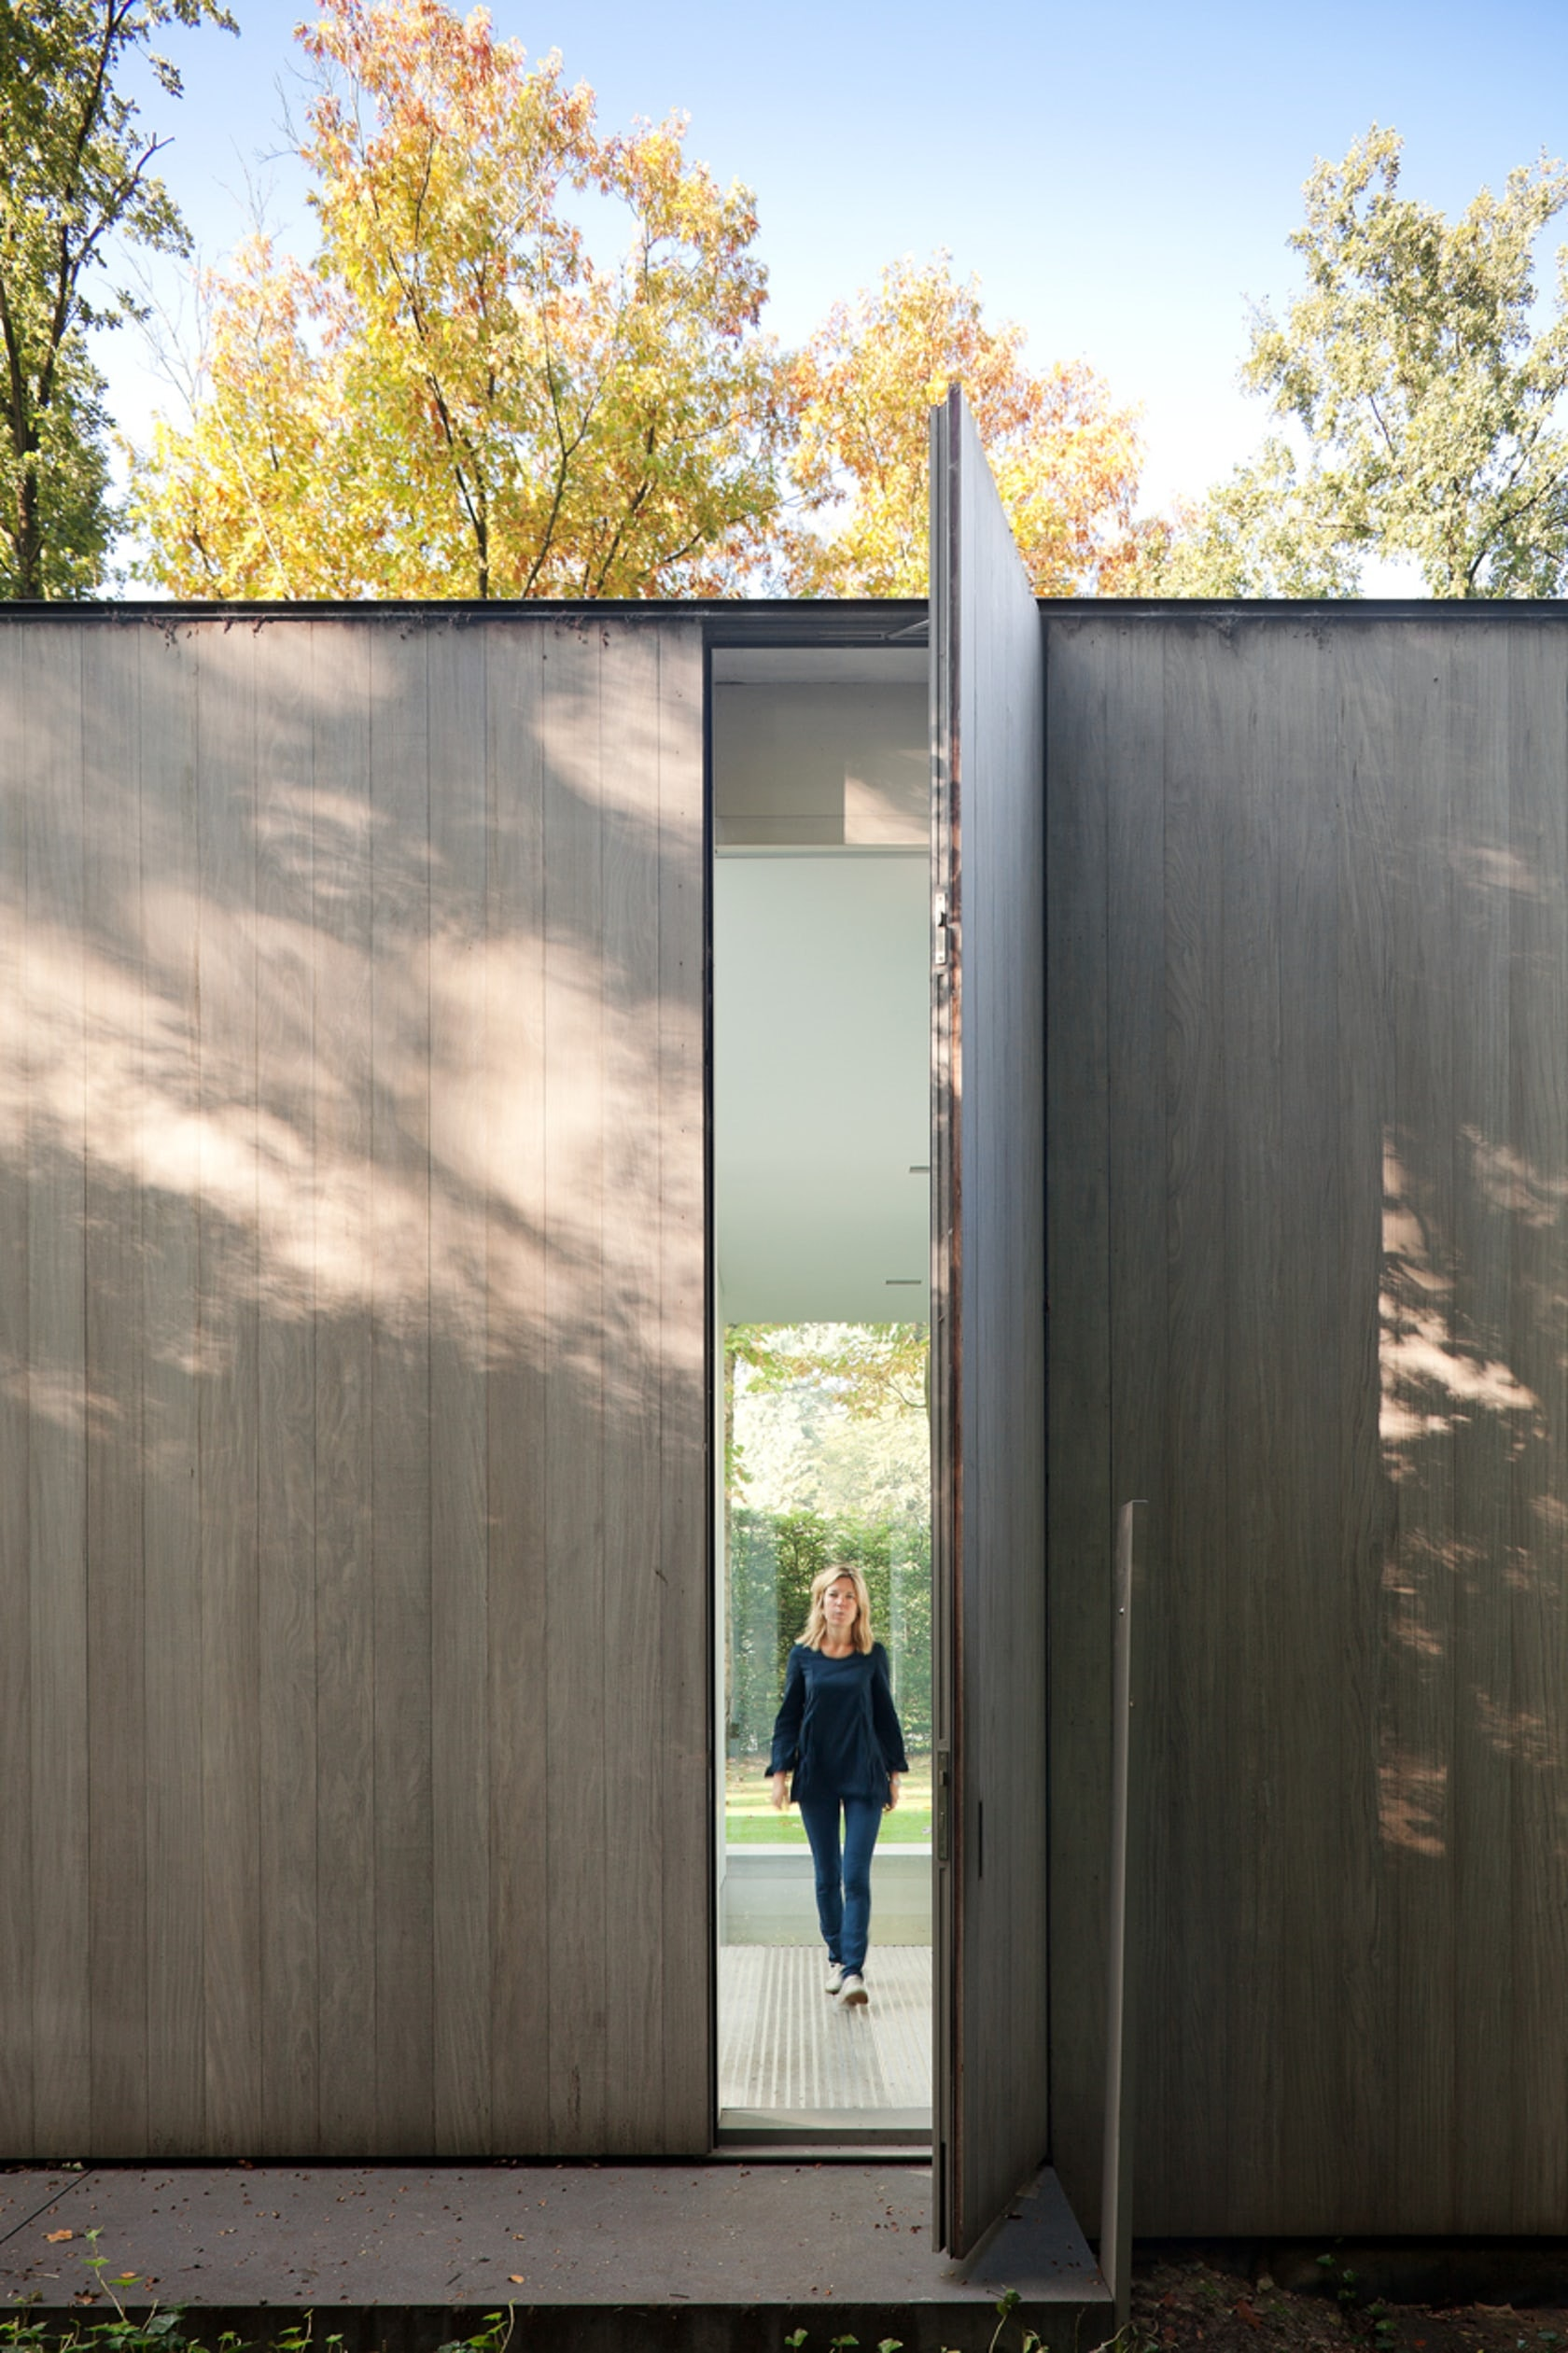 ... Full Height Door Into The Façade Of This Largely Glass Clad Home In  Belgium. The Pivoting Door Matches The Gray Timber Paneling That Lines The  Exterior.